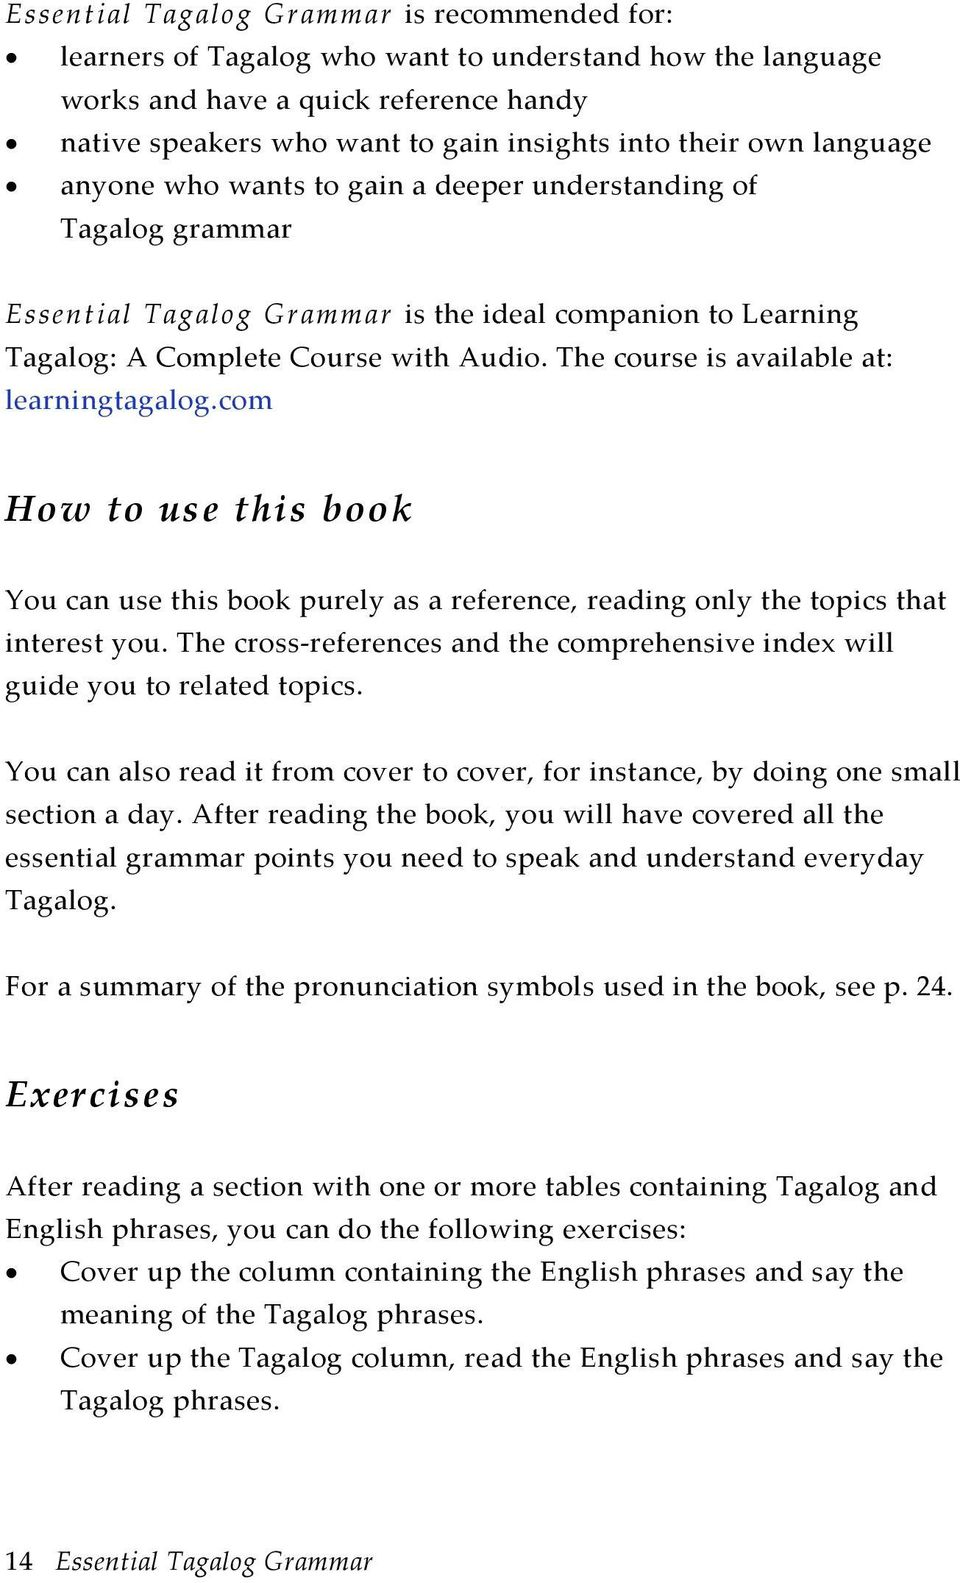 The course is available at: learningtagalog.com How to use this book You can use this book purely as a reference, reading only the topics that interest you.